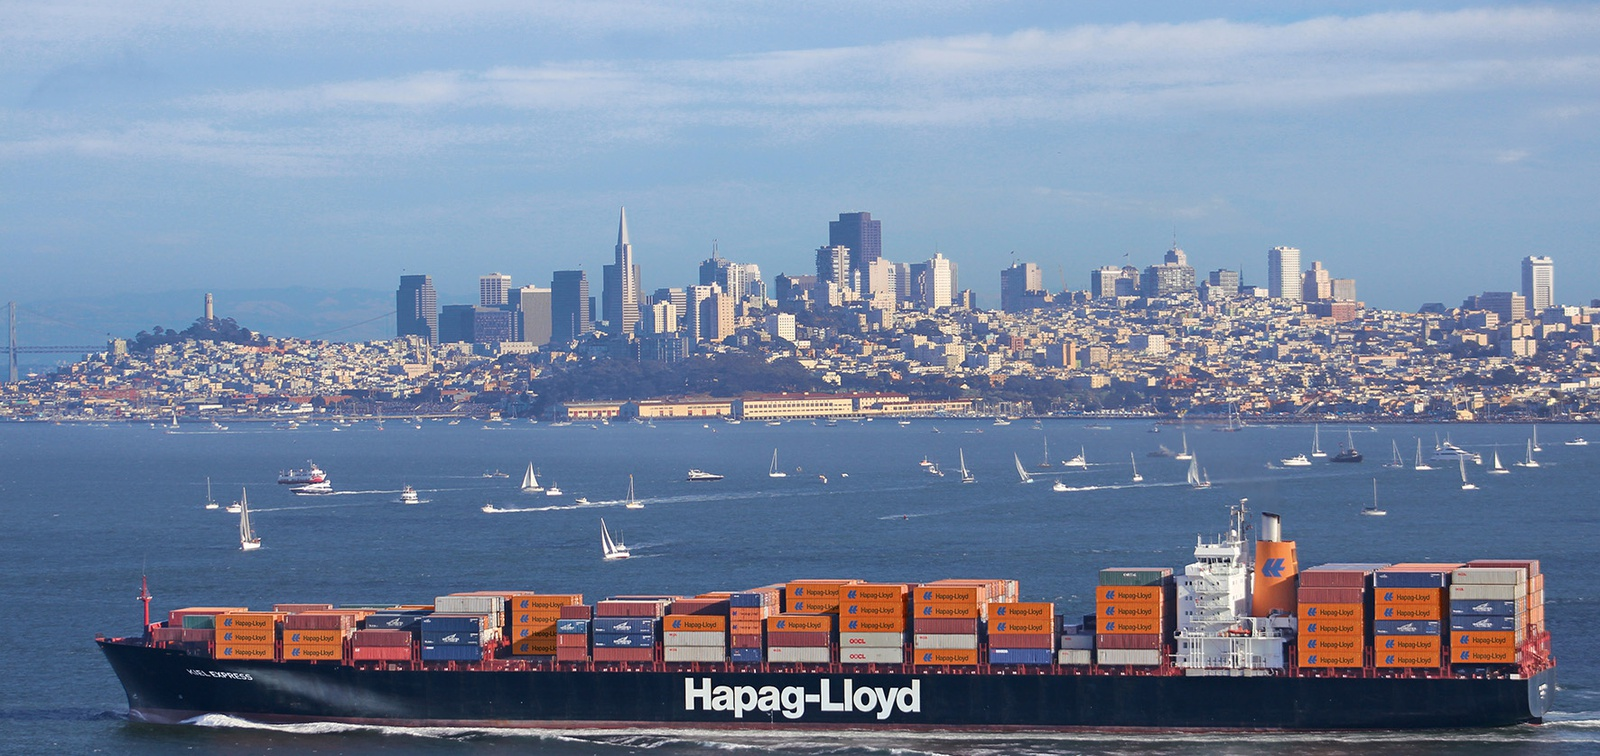 Maersk, Hapag-Lloyd set fuel fees for shippers ahead of IMO 2020